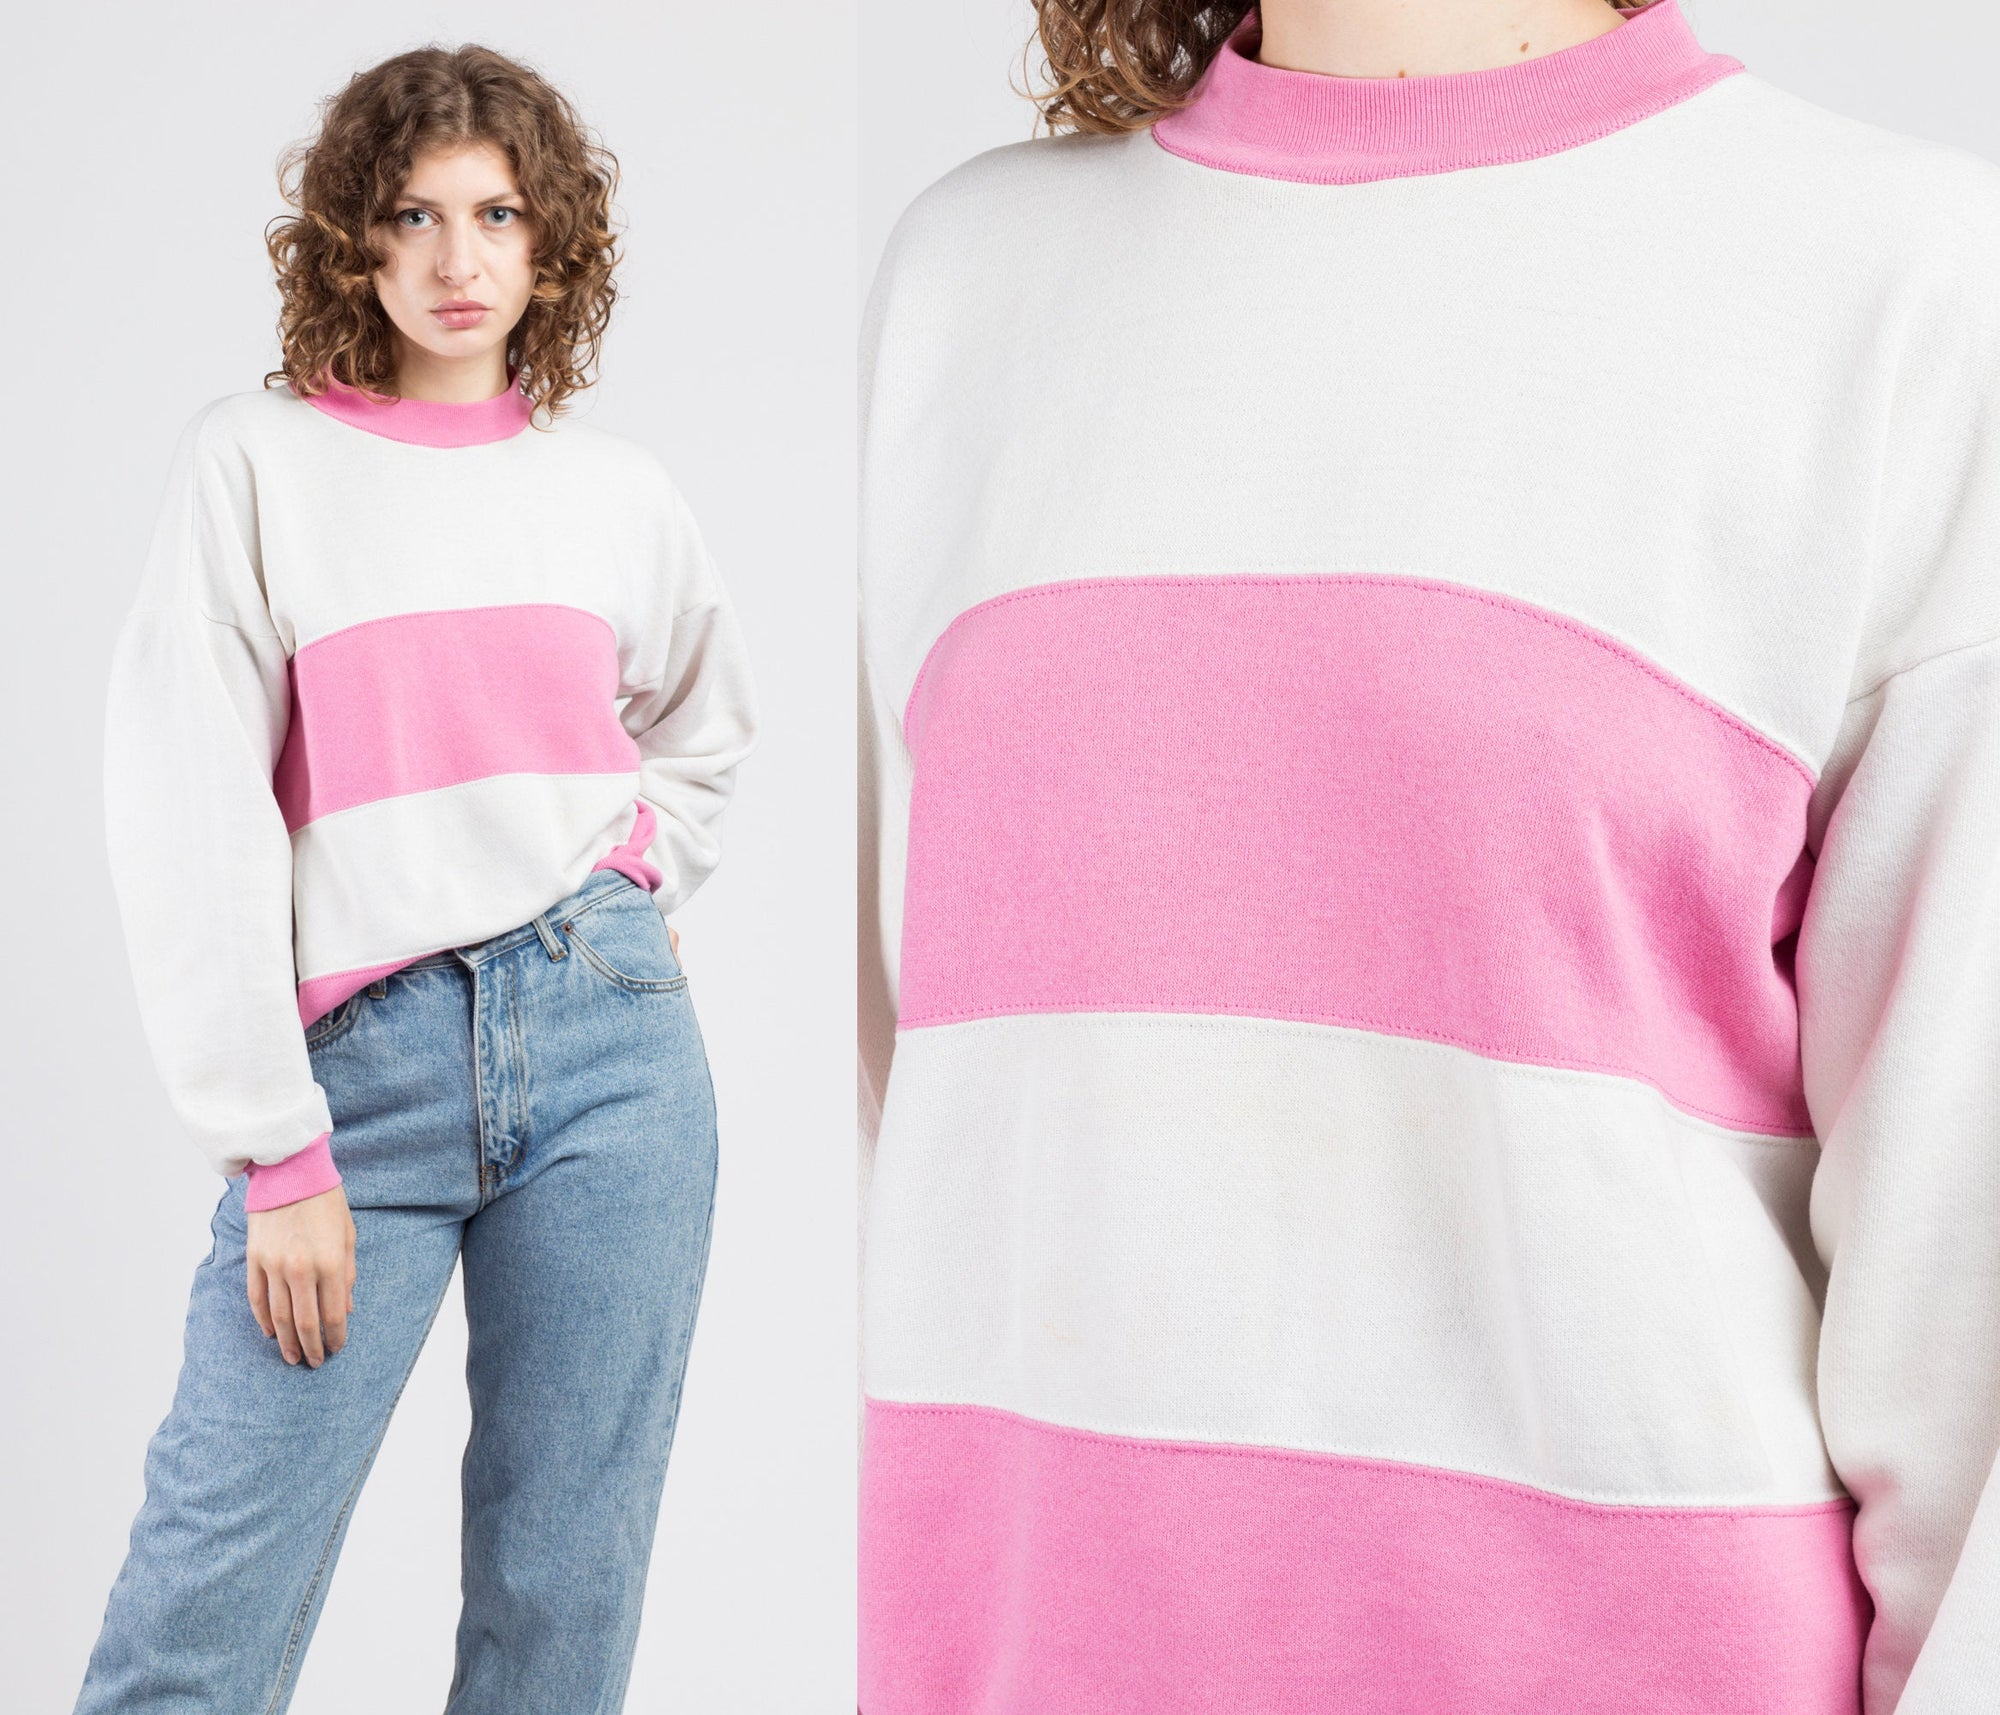 90s Pink & White Striped Sweatshirt - Extra Large